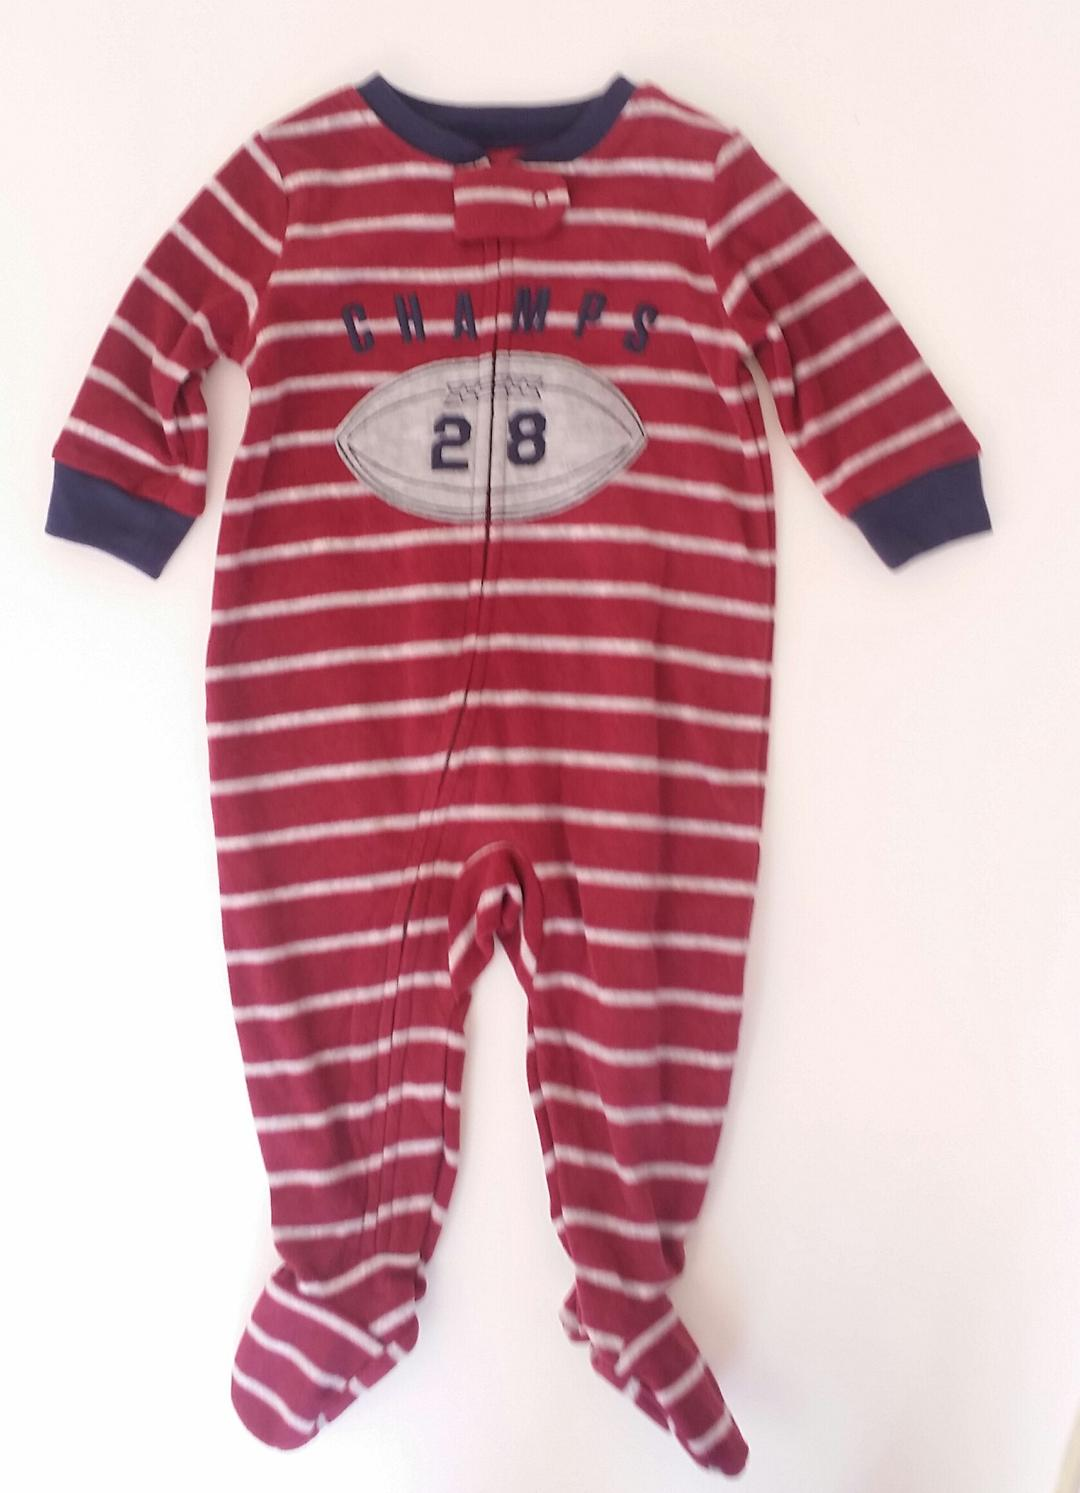 Carters-3-6-MONTHS-Sports-Fleece-Pajamas_2143307A.jpg